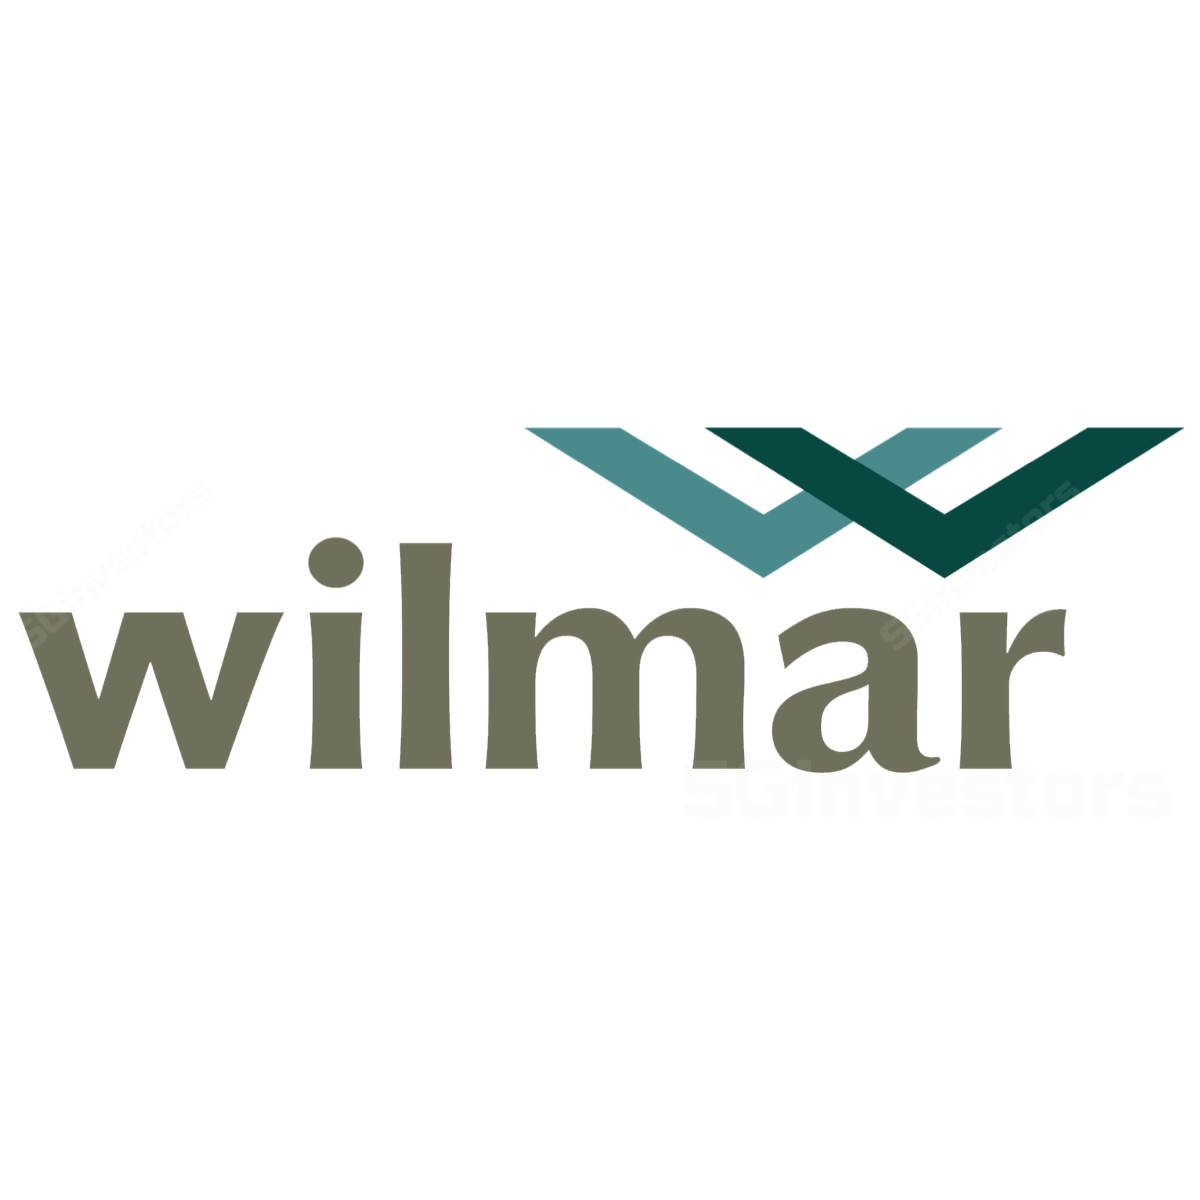 Wilmar - OCBC Investment 2017-09-07: Making Acquisitions